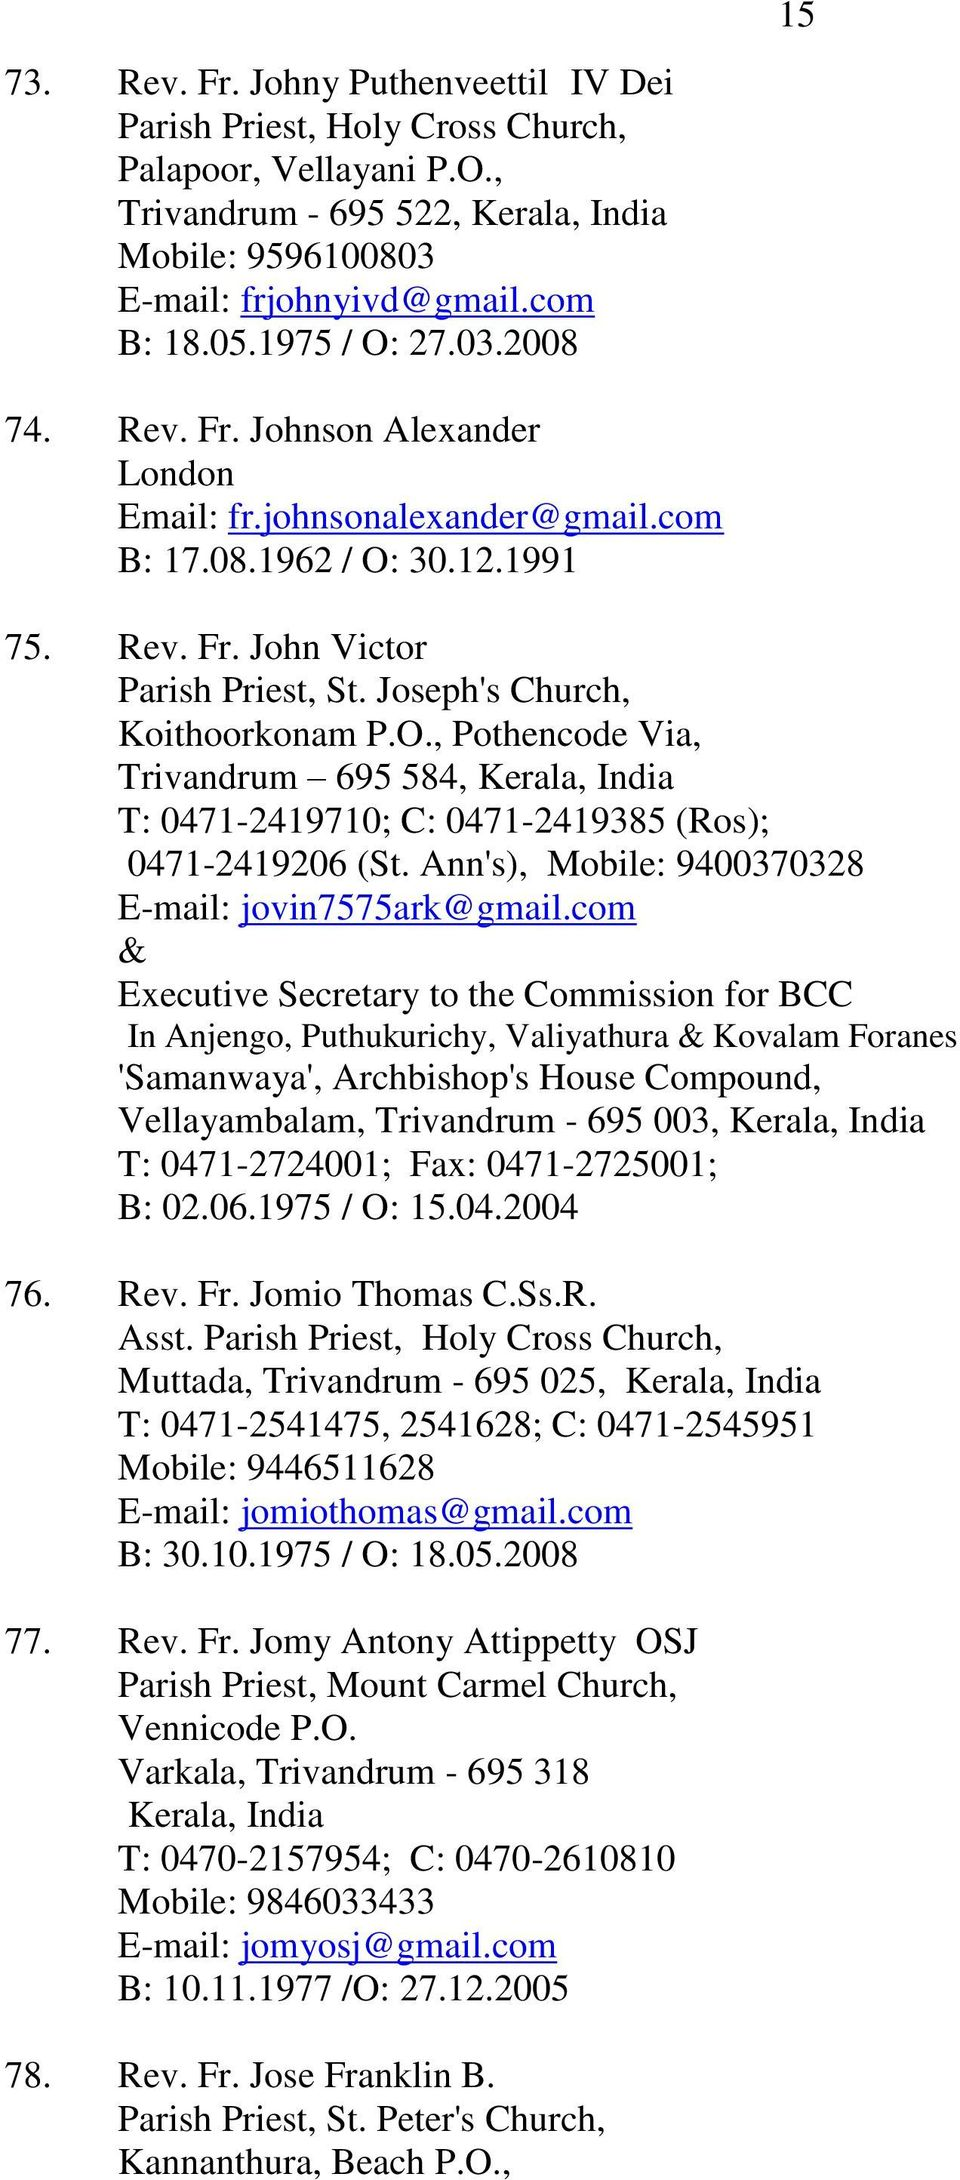 LATIN ARCHDIOCESE OF TRIVANDRUM. His Grace, Most Rev. Dr. M. Soosa ...